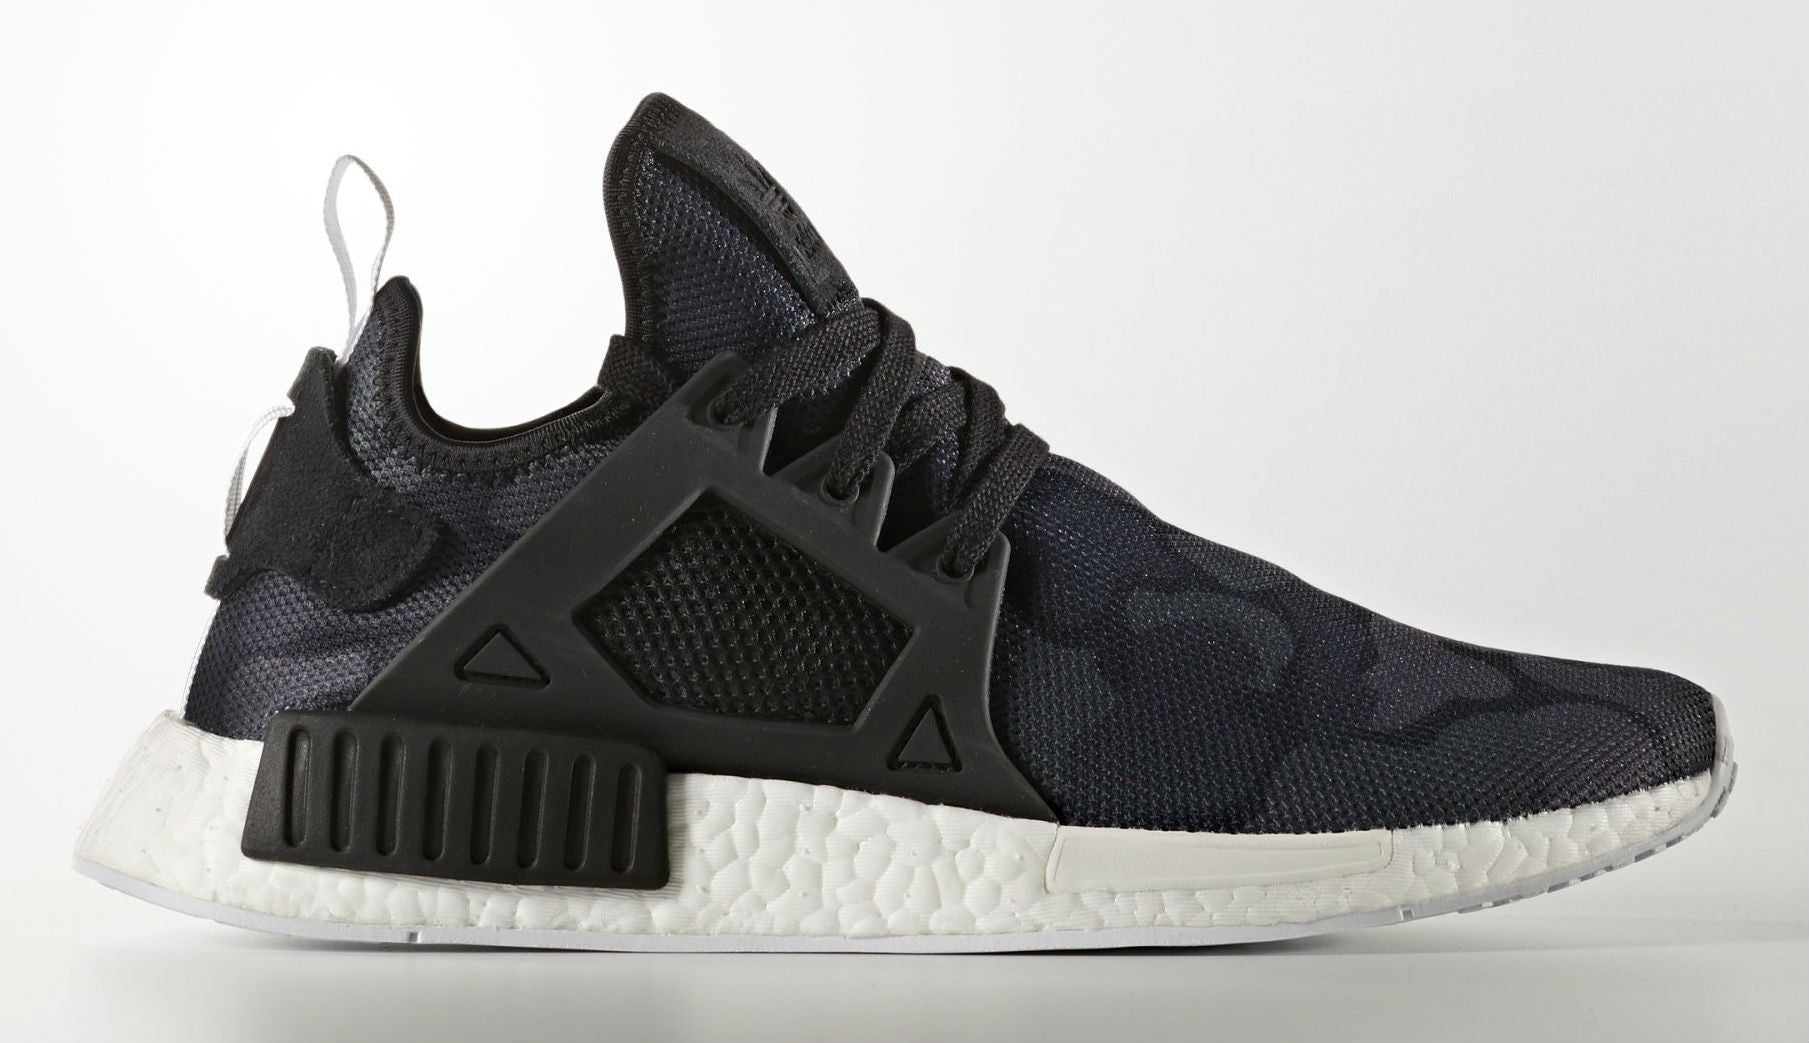 Adidas Originals NMD XR1 Black Camo Toe